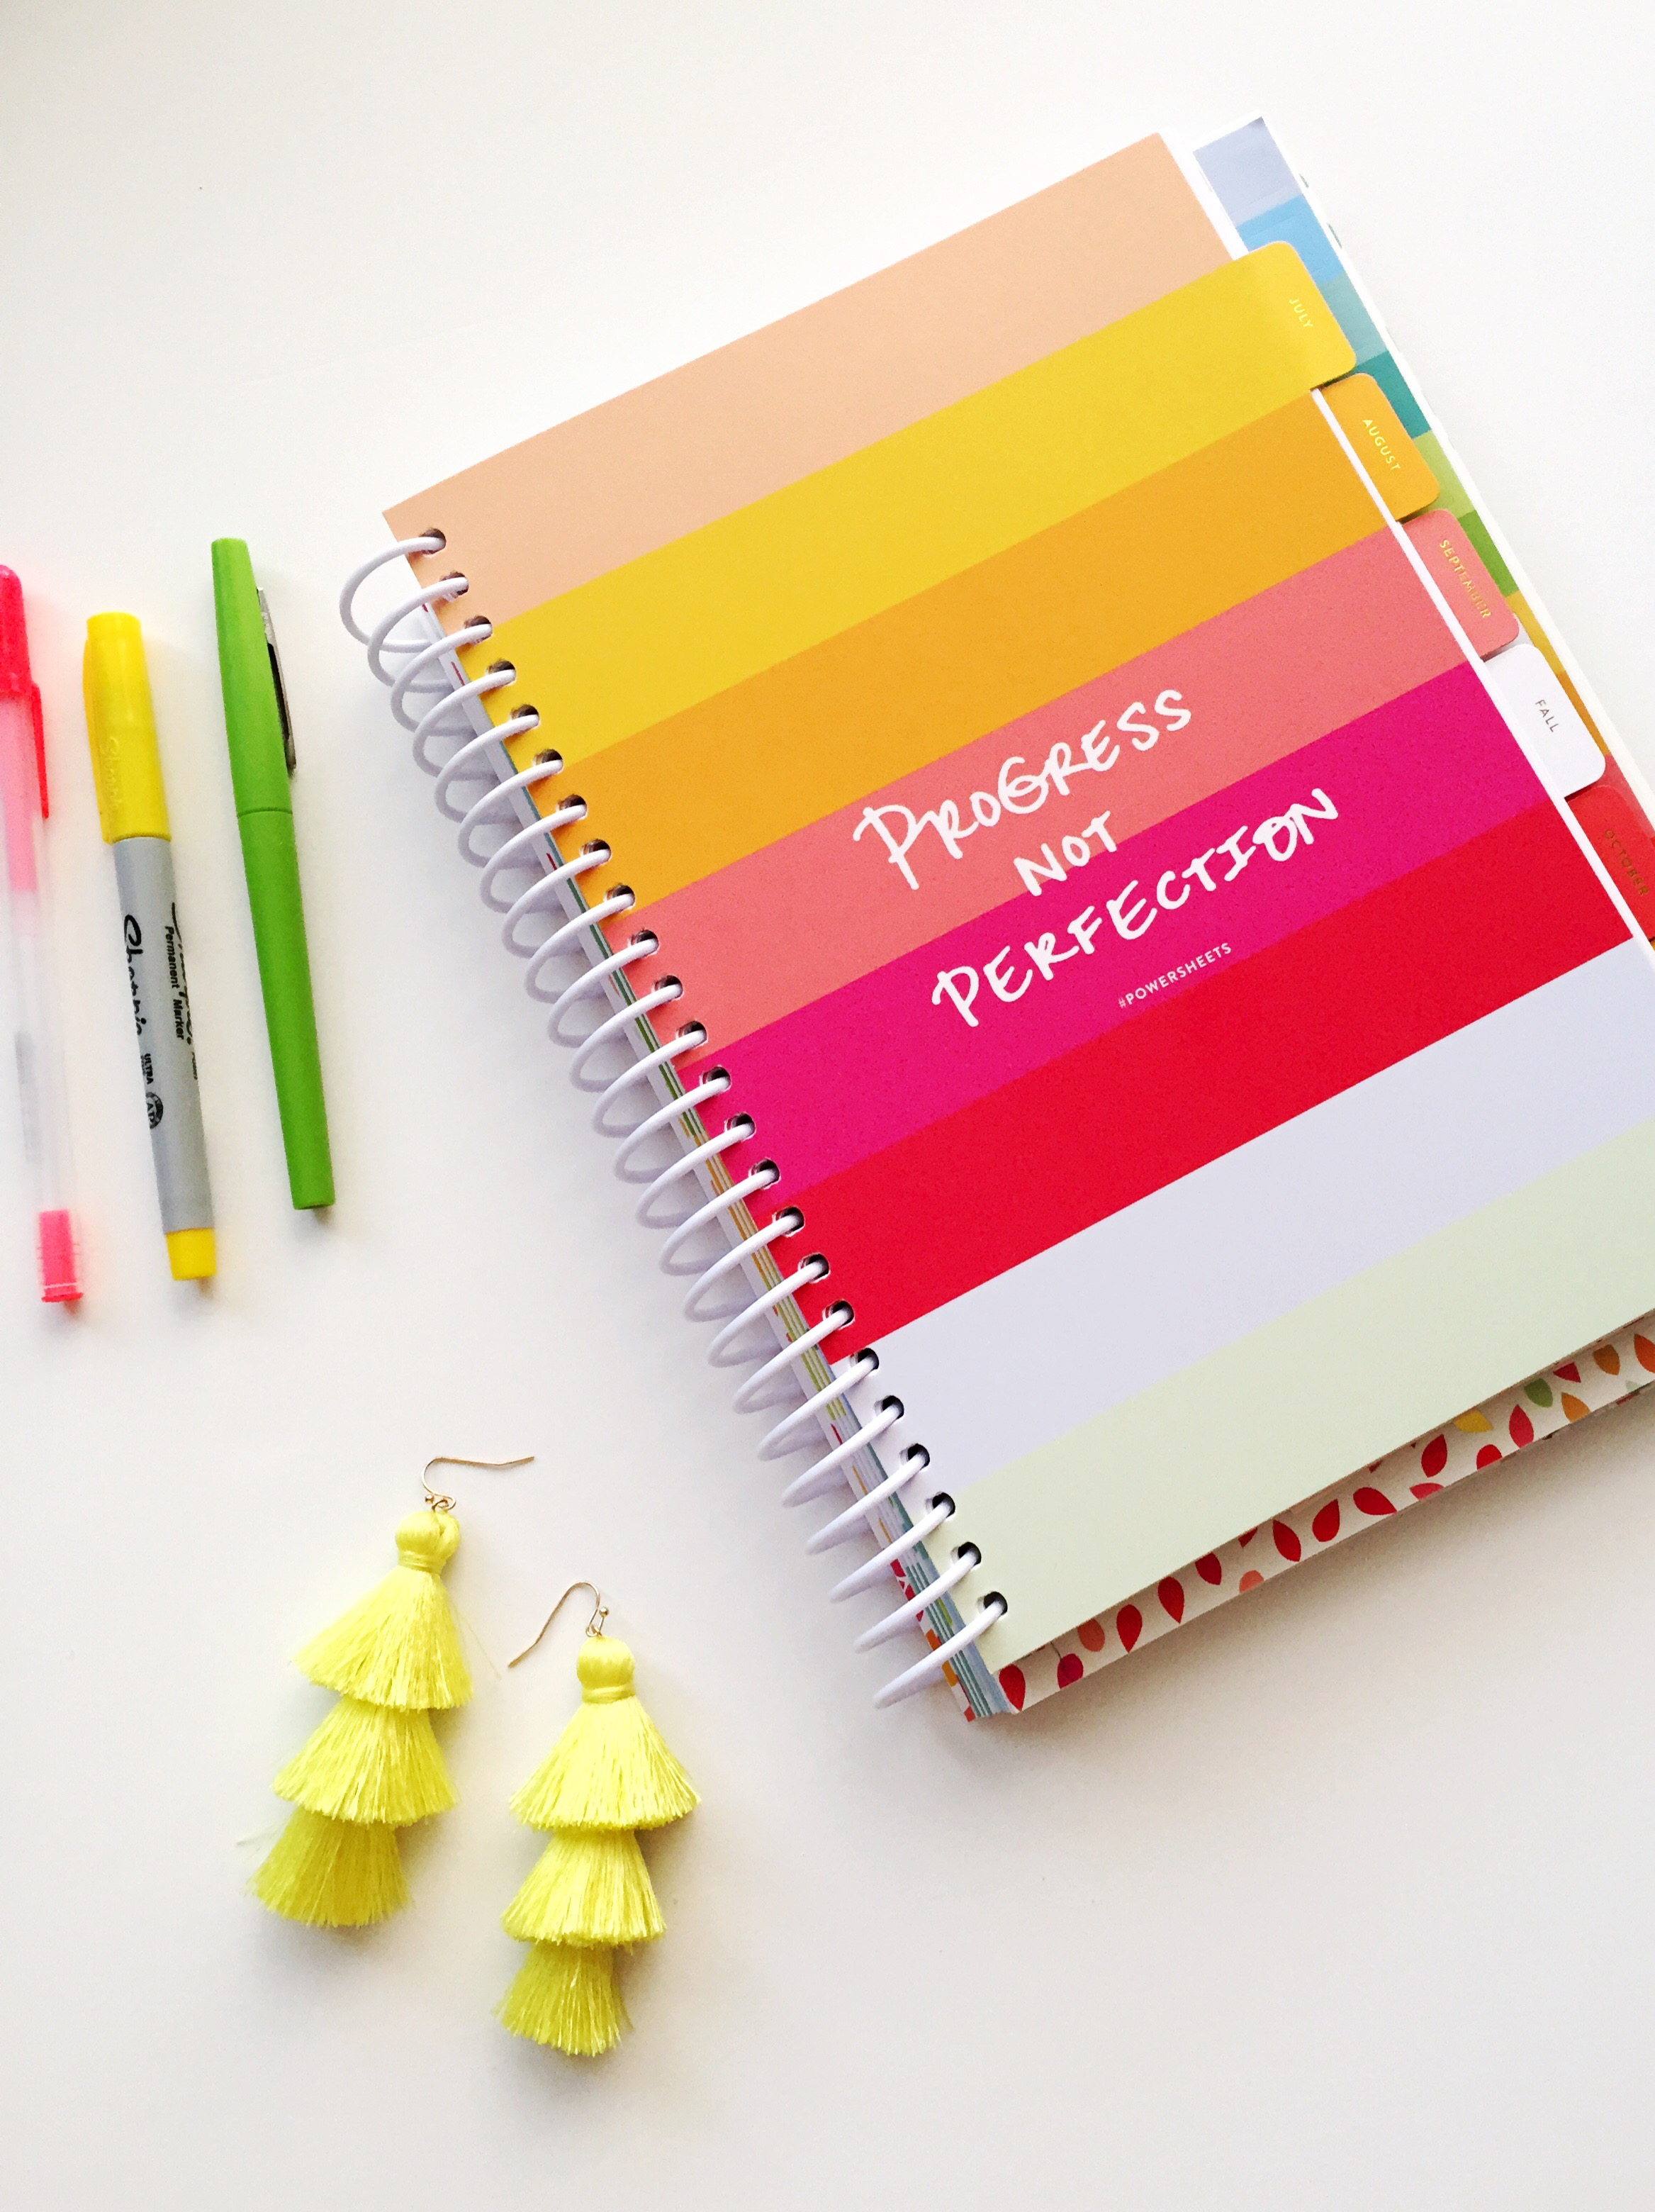 How to Plan Goals / How to Set Goals and Achieve Them / Goal Setting / Powersheets 2019 Intentional Goal Planner / Lara Casey Powersheets / See my 2019 Goals on Sunshine Style, www.sunshinestyleblog.com